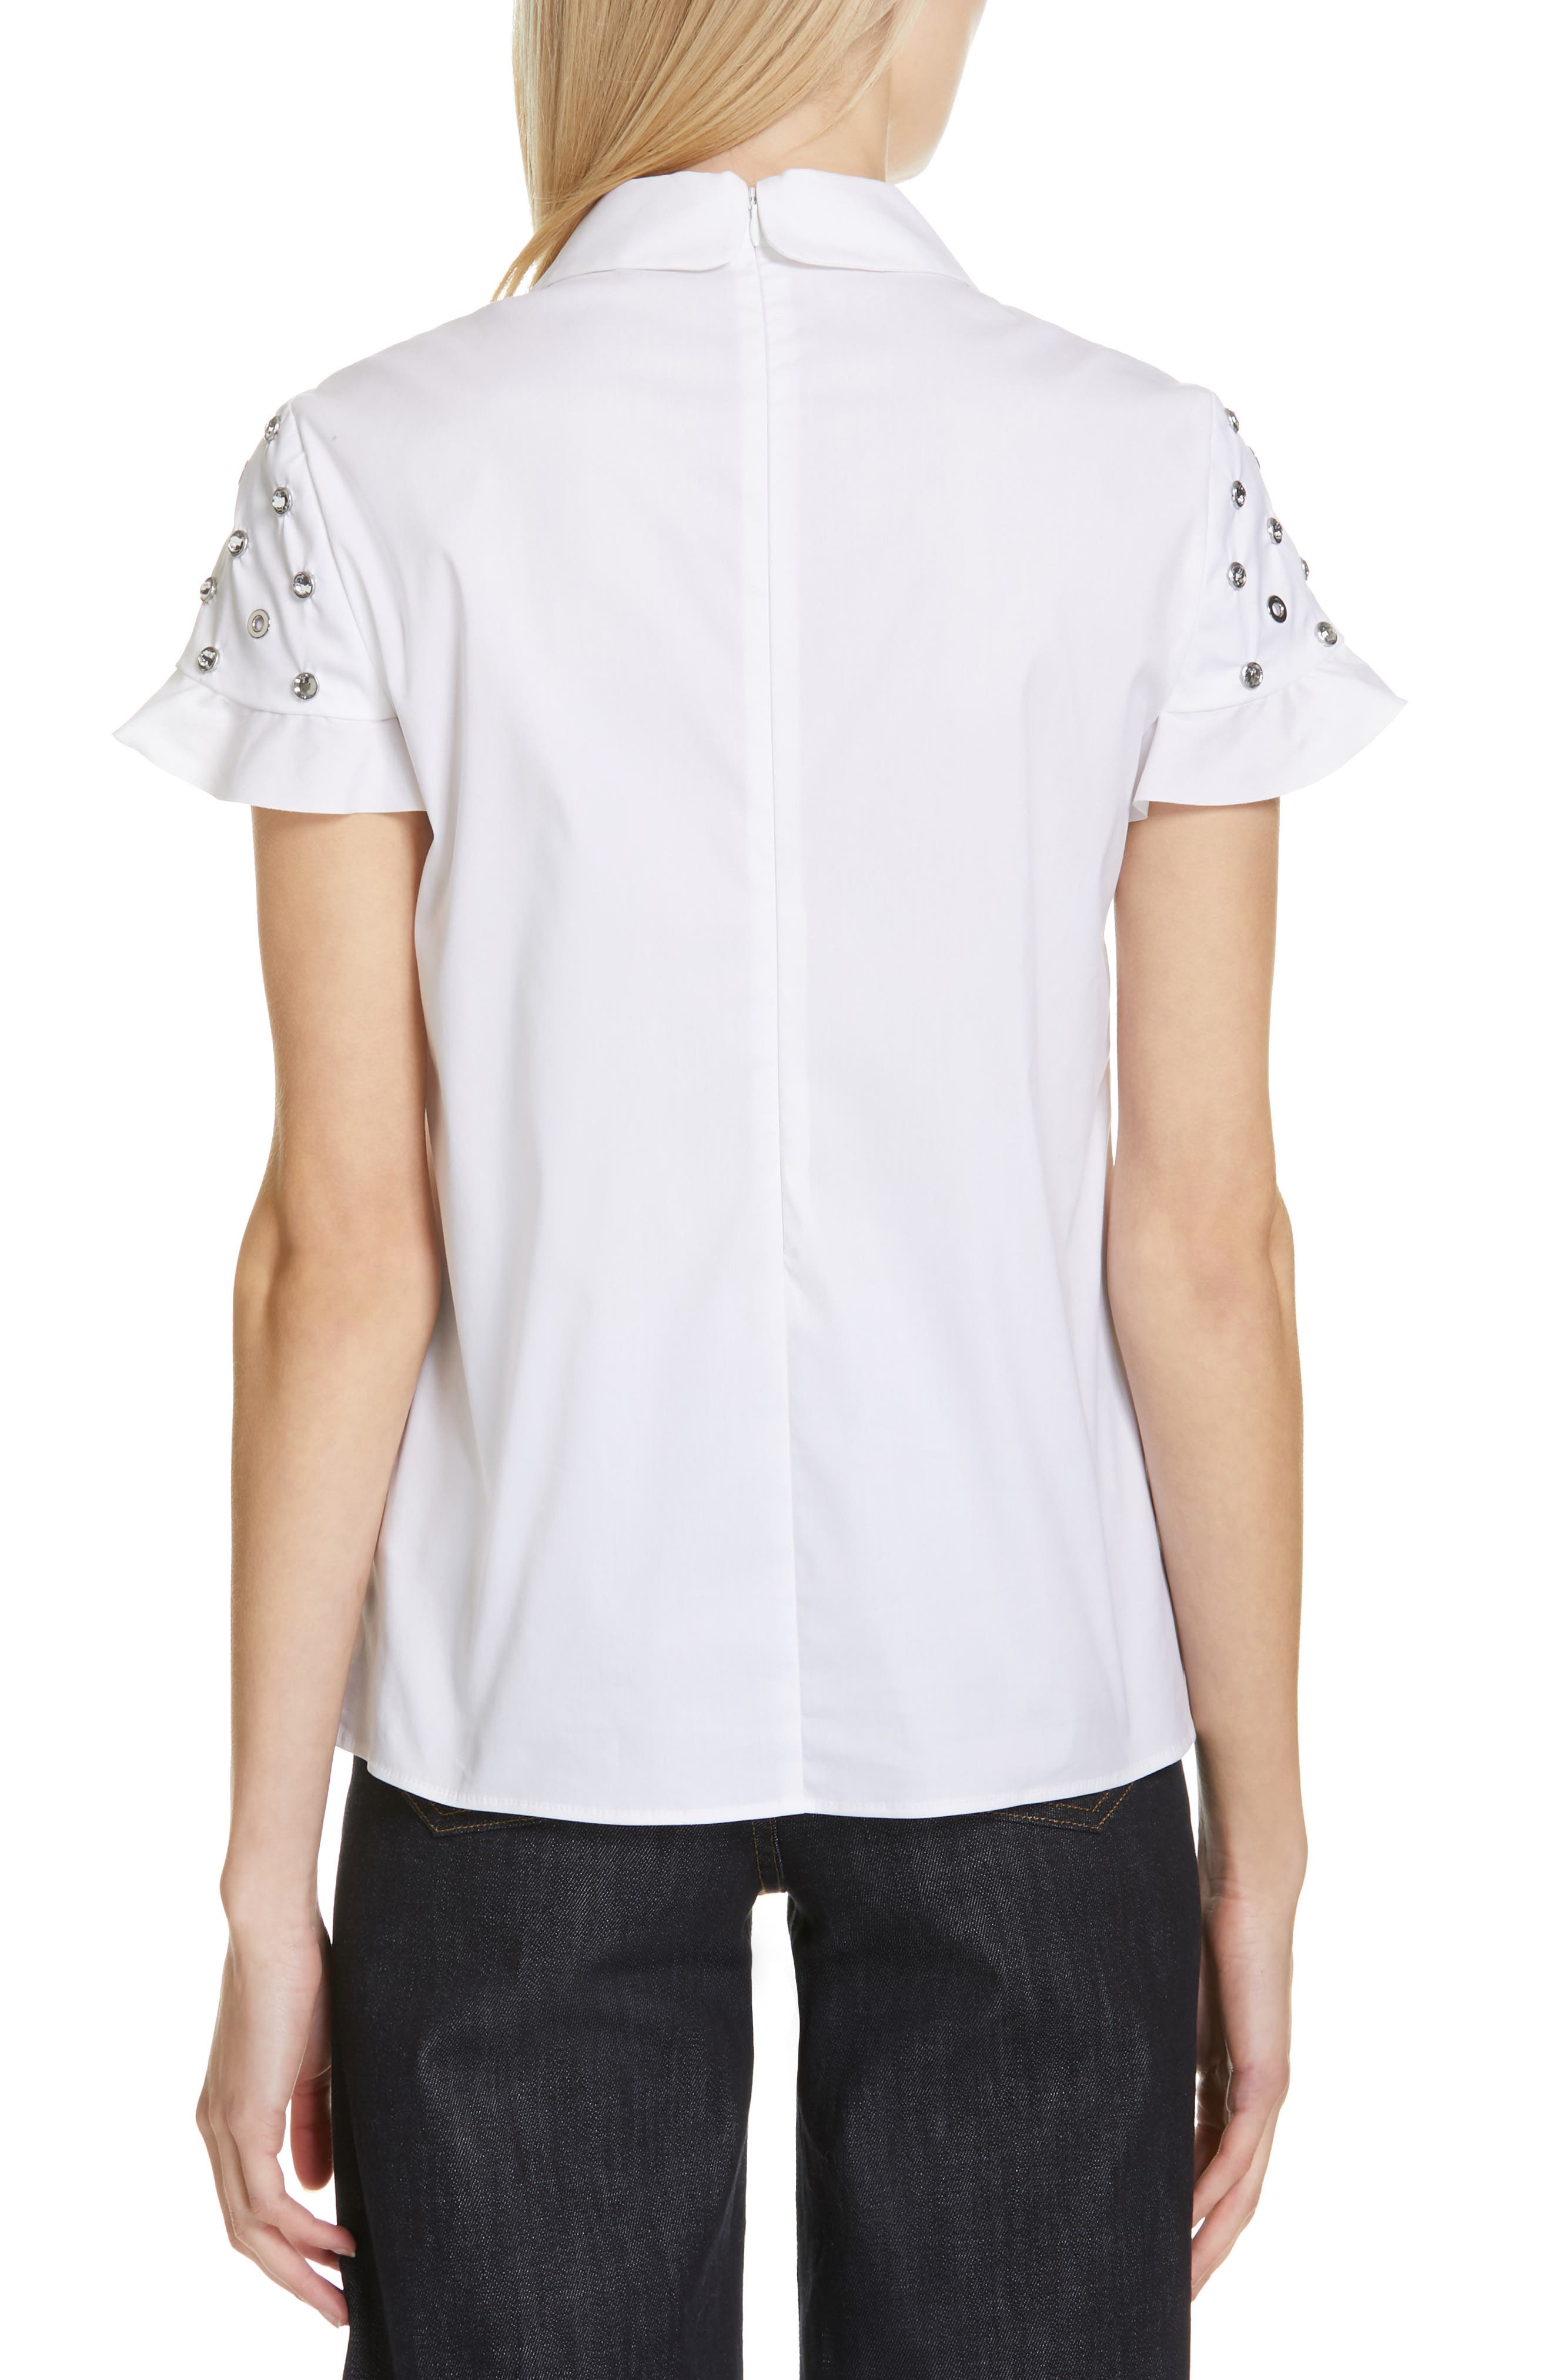 RED VALENTINO, Grommet & Crystal Ruffle Sleeve Top, Alternate thumbnail 2, color, BIANCO OTTICO